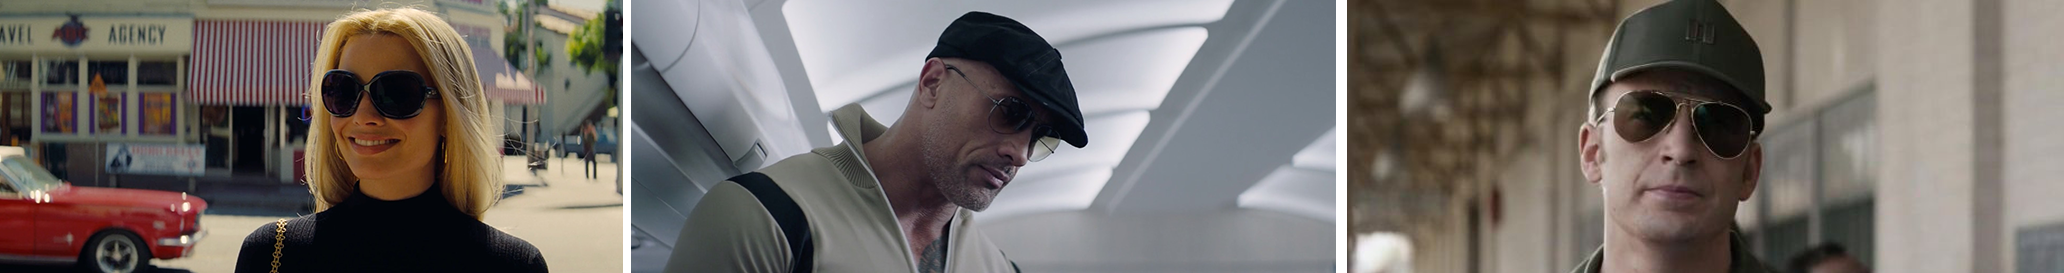 Rayban, ray ban, ray-ban, Concave brand tracking, product placement, brands, movies, entertainment marketing, branded integration, integration marketing, analysis, valuation, metrics, measurement, concave, sunglasses, glasses, once upon a time in hollywood, margot robbie, the rock, hobbs and shaw, hobbs & shaw, avengers, endgame